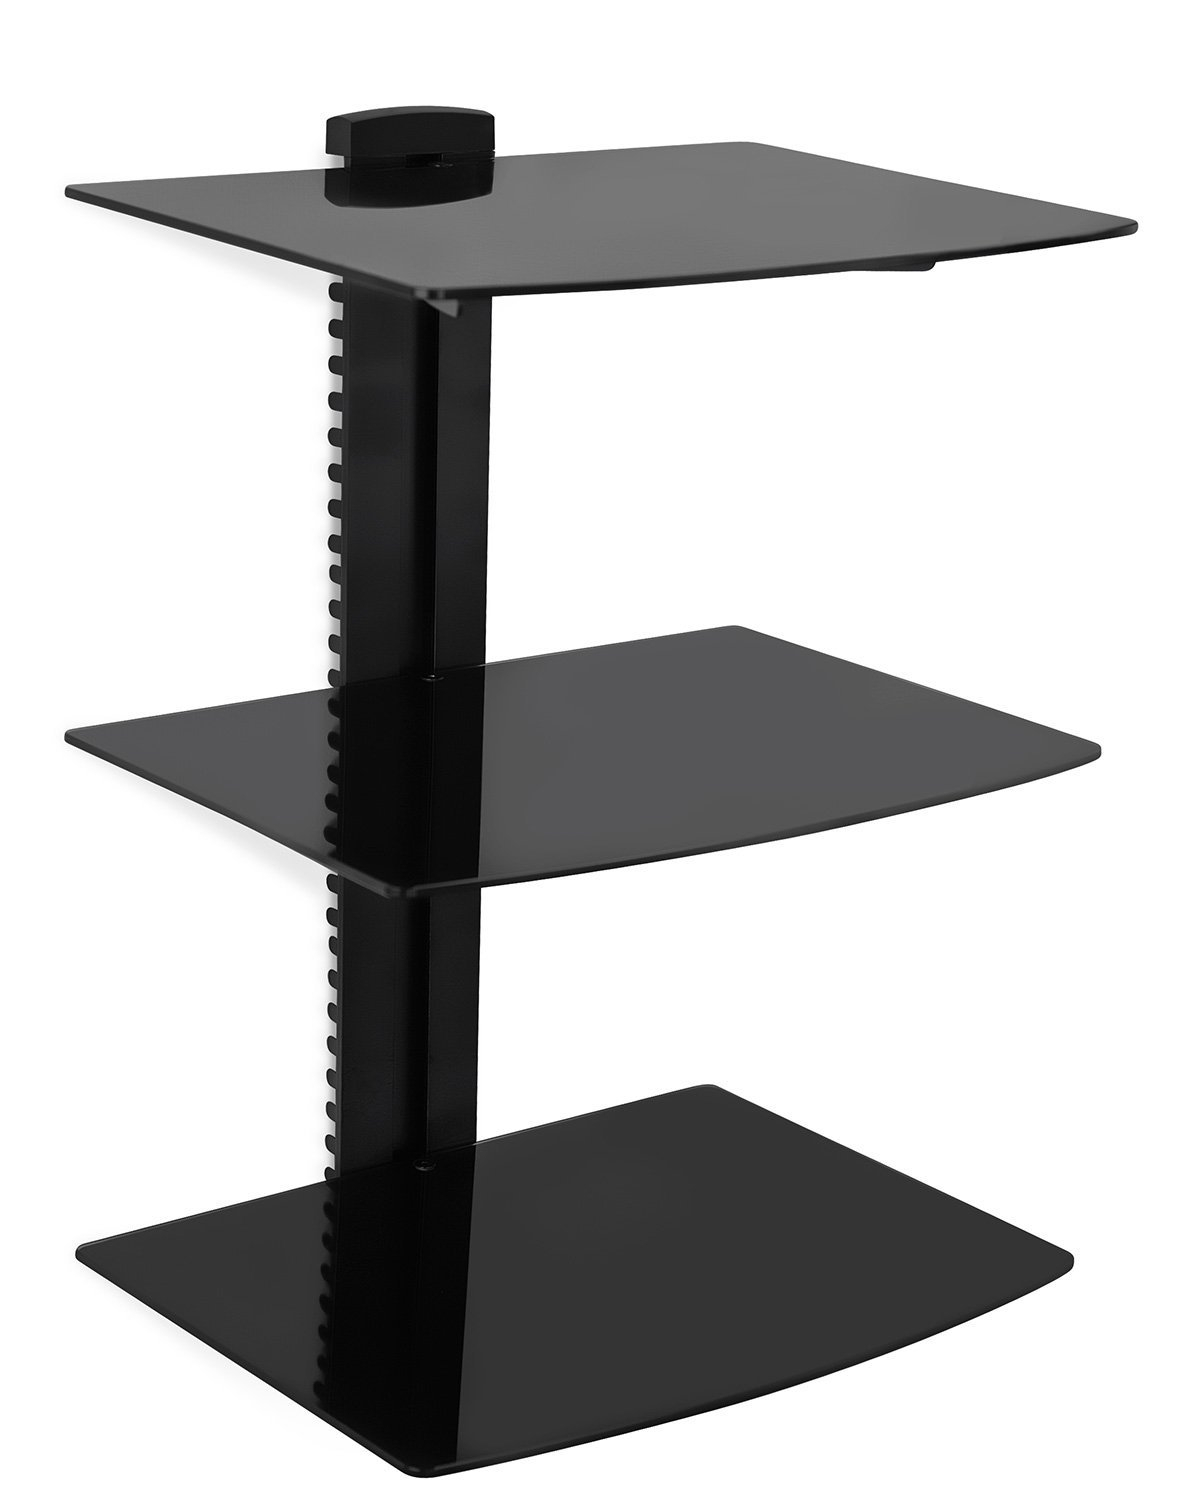 Amazon Mount It Wall Mounted Av Component Shelving System Intended For Black Glass Shelves Wall Mounted (#2 of 15)